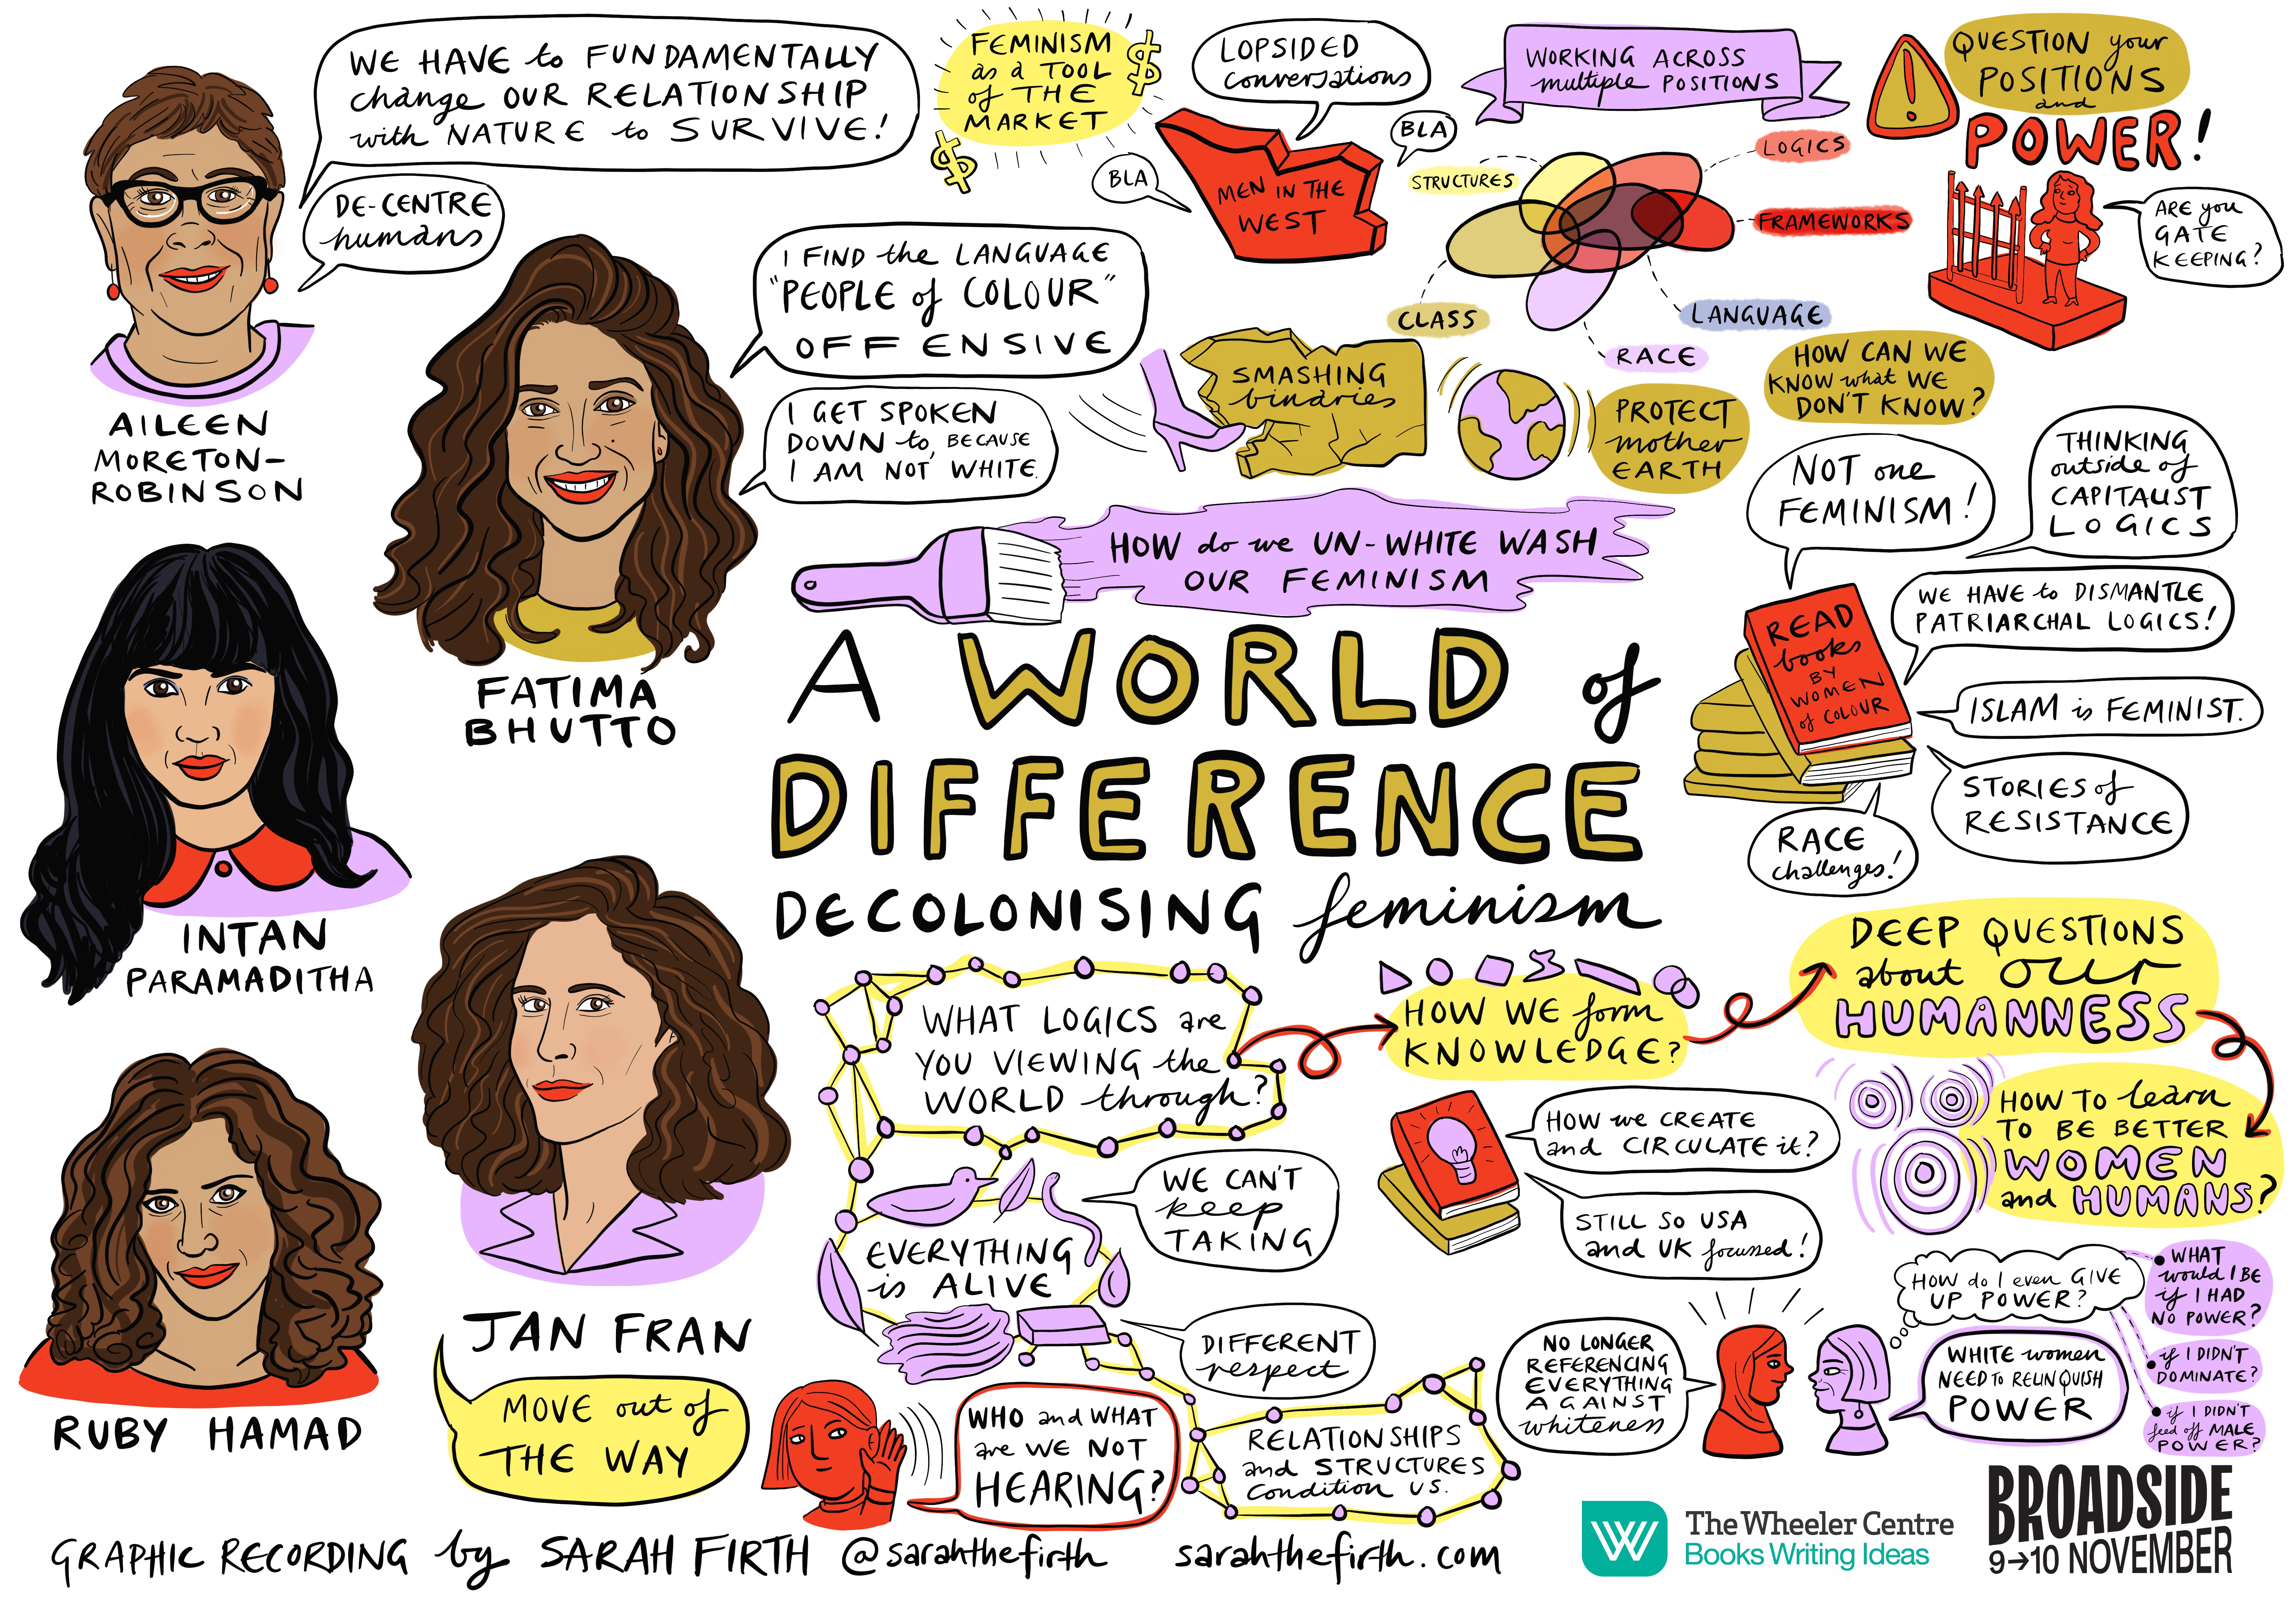 Illustrated portraits of Aileen Moreton-Robinson, Fatima Bhutto, Intan Paramaditha, Jan Fran and Ruby Hamad, with cartoons and quotes reflecting their onstage conversation